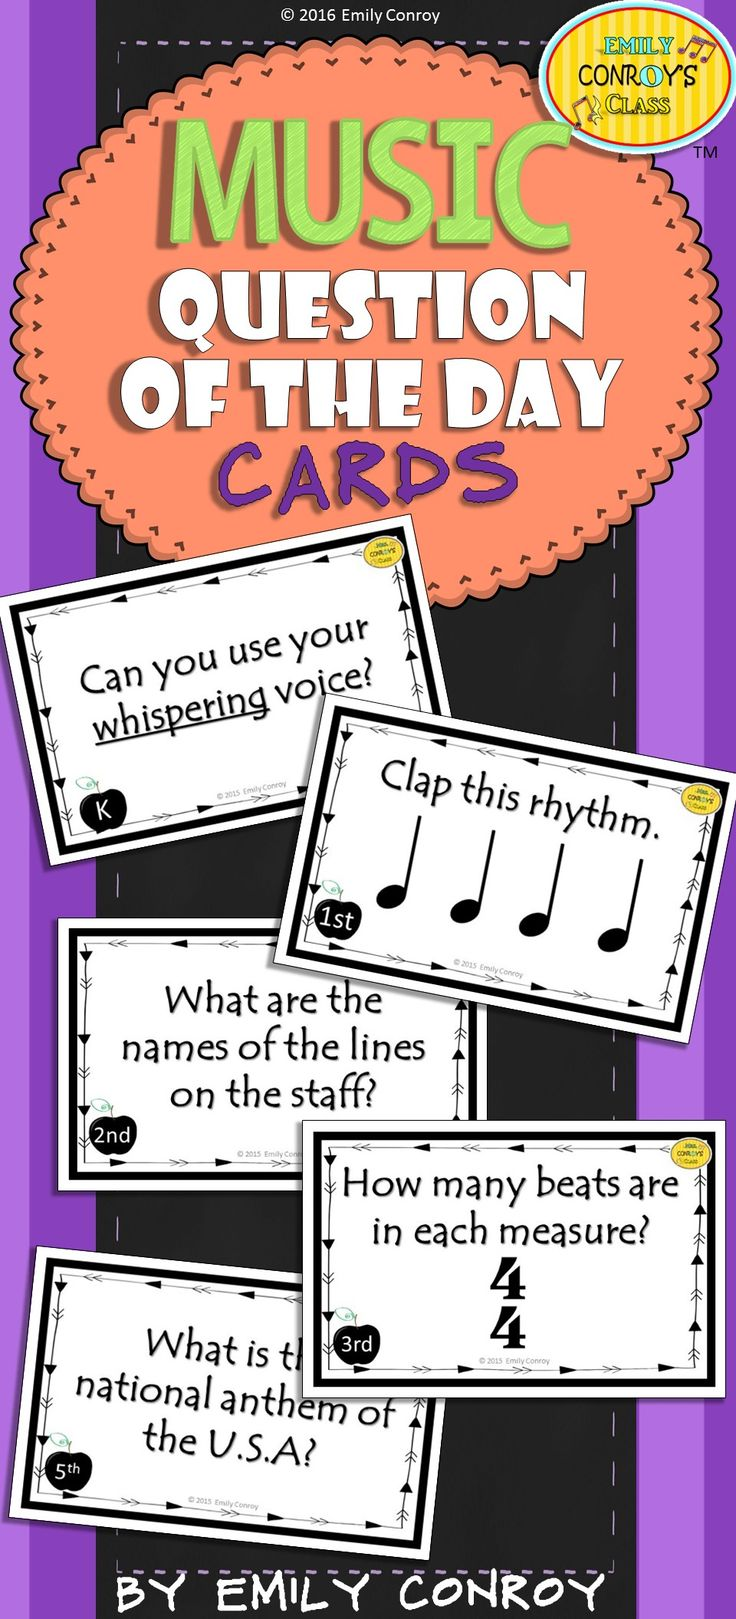 Music Question of the Day Cards contains 85 cards to aid students in entering the music room quietly and to review concepts taught in the previous class period. Simply display a card as students enter the classroom and read it to students or have them read the card silently. Call on a student to answer the question displayed on the card (but only call on students who entered the room quietly!). If the student answers correctly, give him or her something special during class!